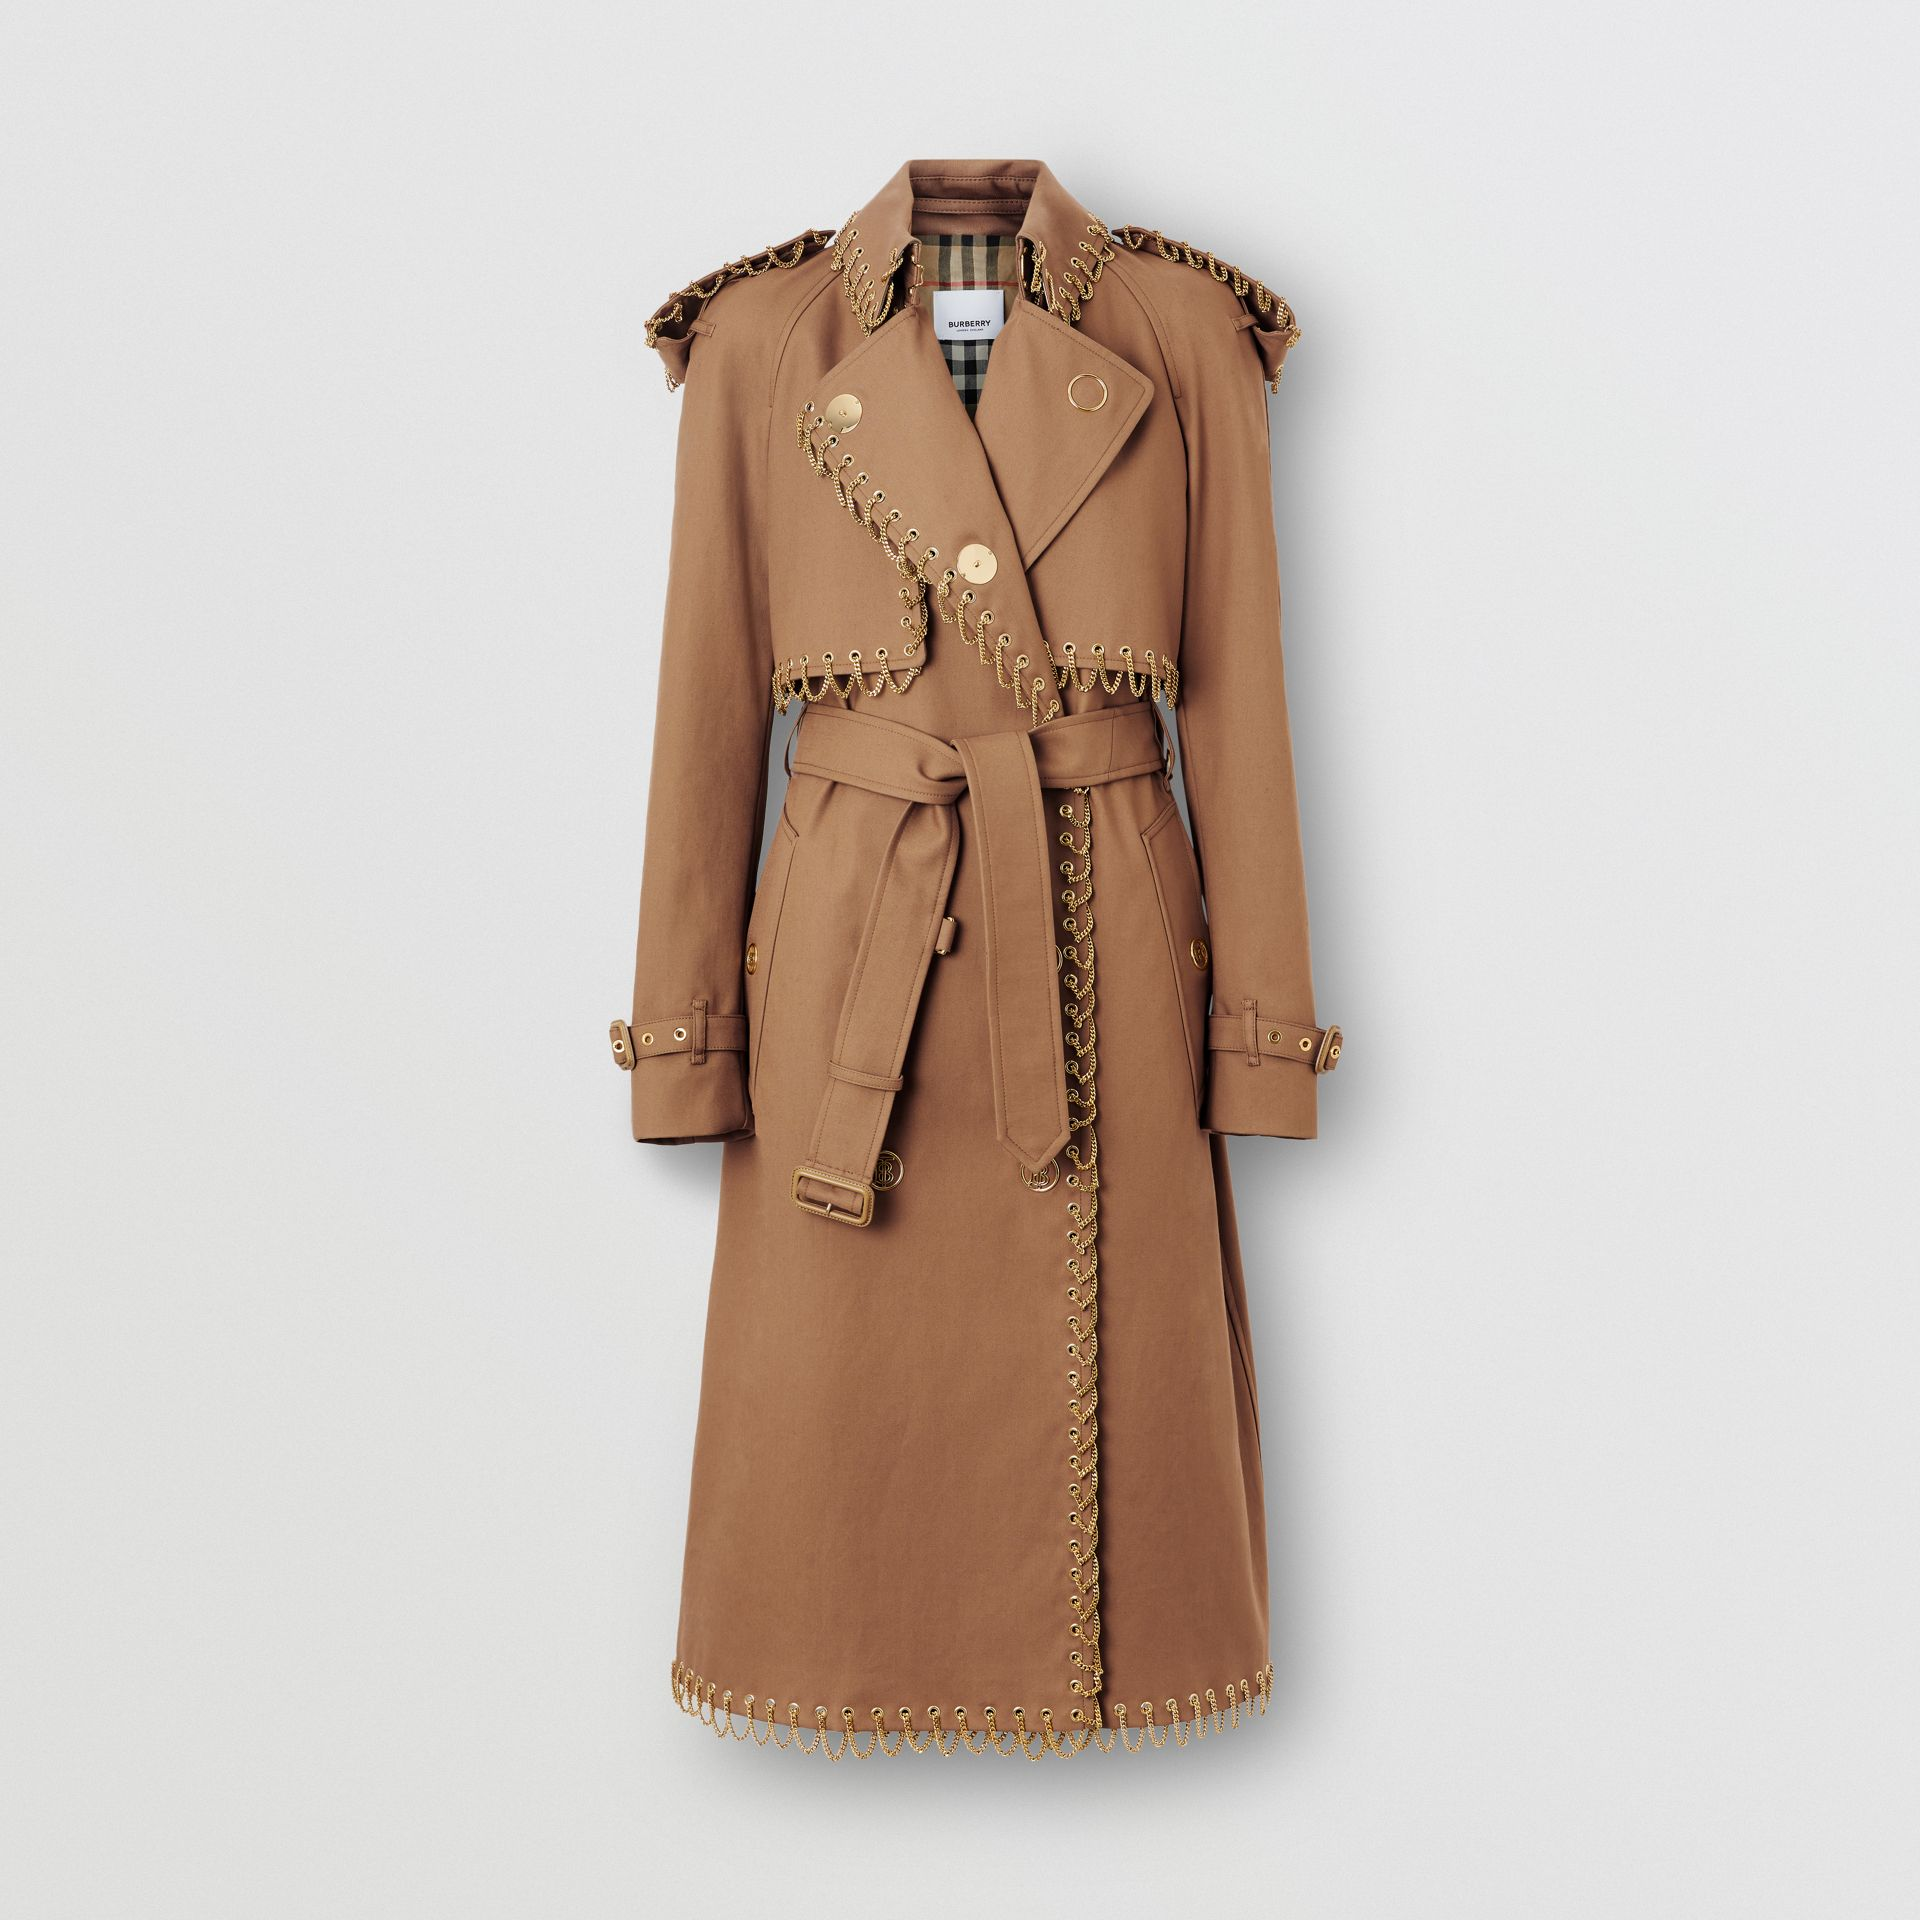 Chain Detail Cotton Gabardine Trench Coat in Warm Walnut - Women | Burberry - gallery image 3